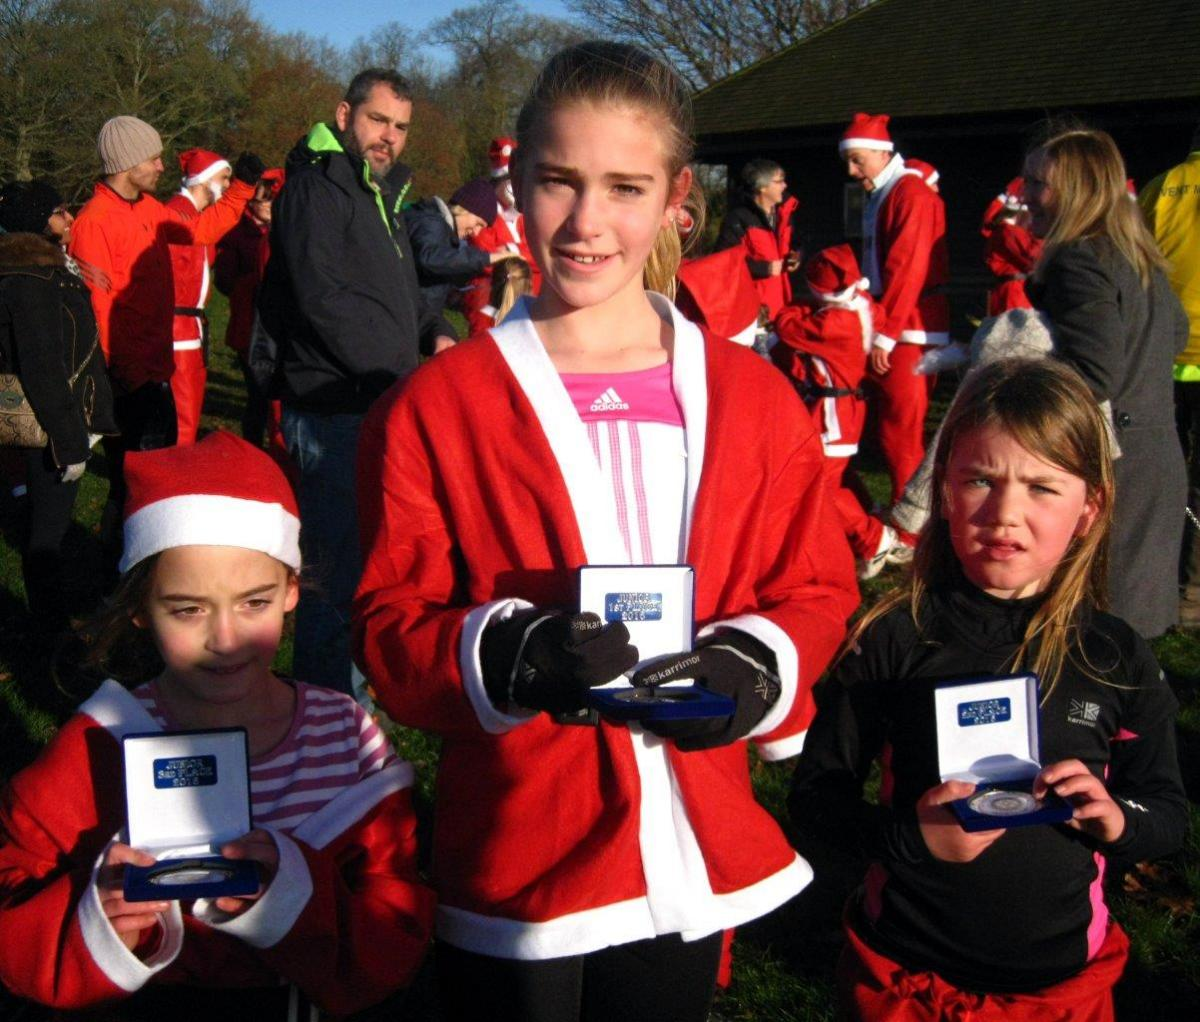 Rotary Fun Run in the park - Gold winner Sophie Bates (centre), Silver to Lily Riley-Flinders (right) and Bronze to Abigail Skinner(left)